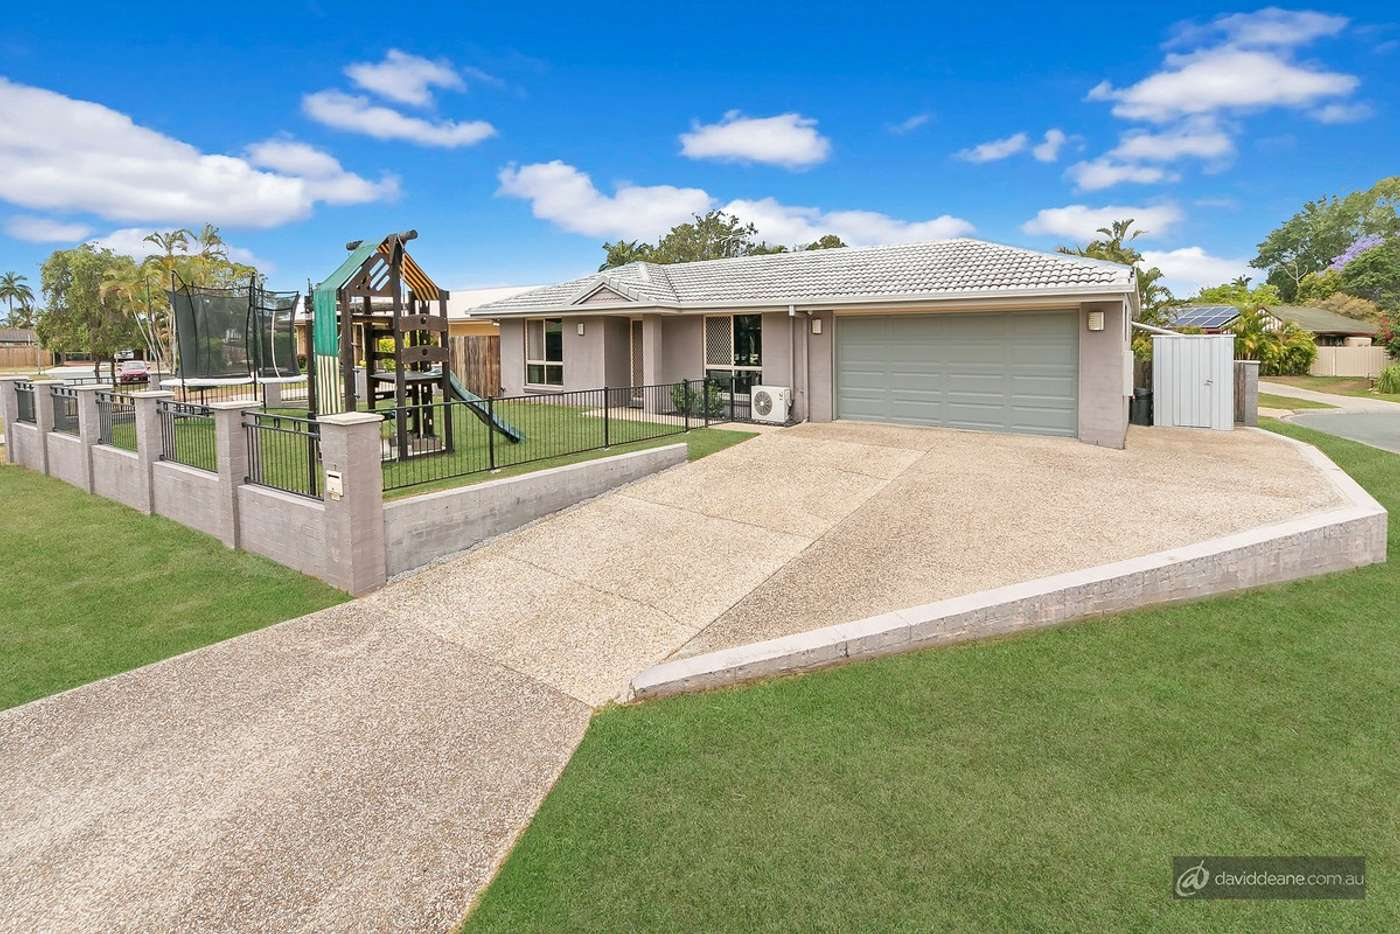 Main view of Homely house listing, 7 Lambourne Court, Lawnton QLD 4501